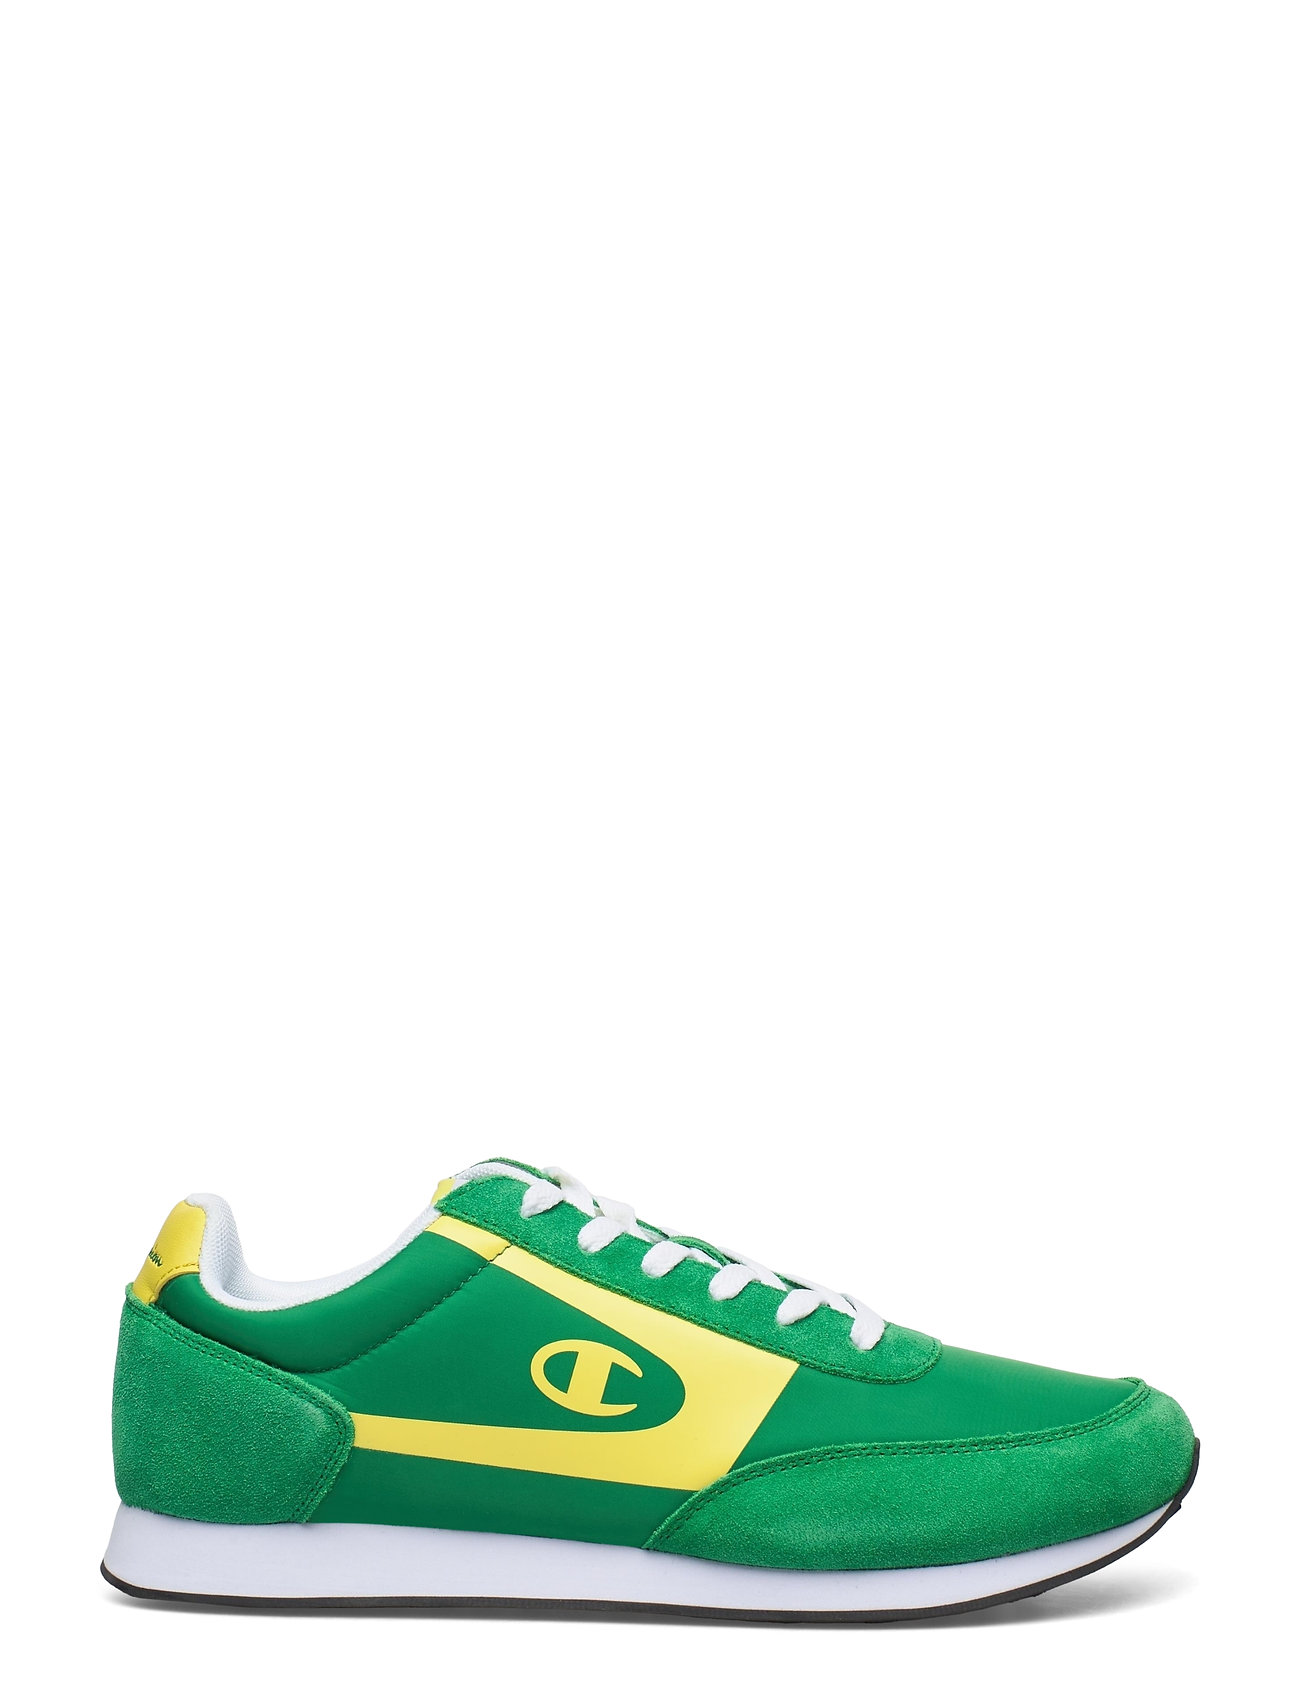 Image of Low Cut Shoe Sirio Low-top Sneakers Grøn Champion (3528690755)